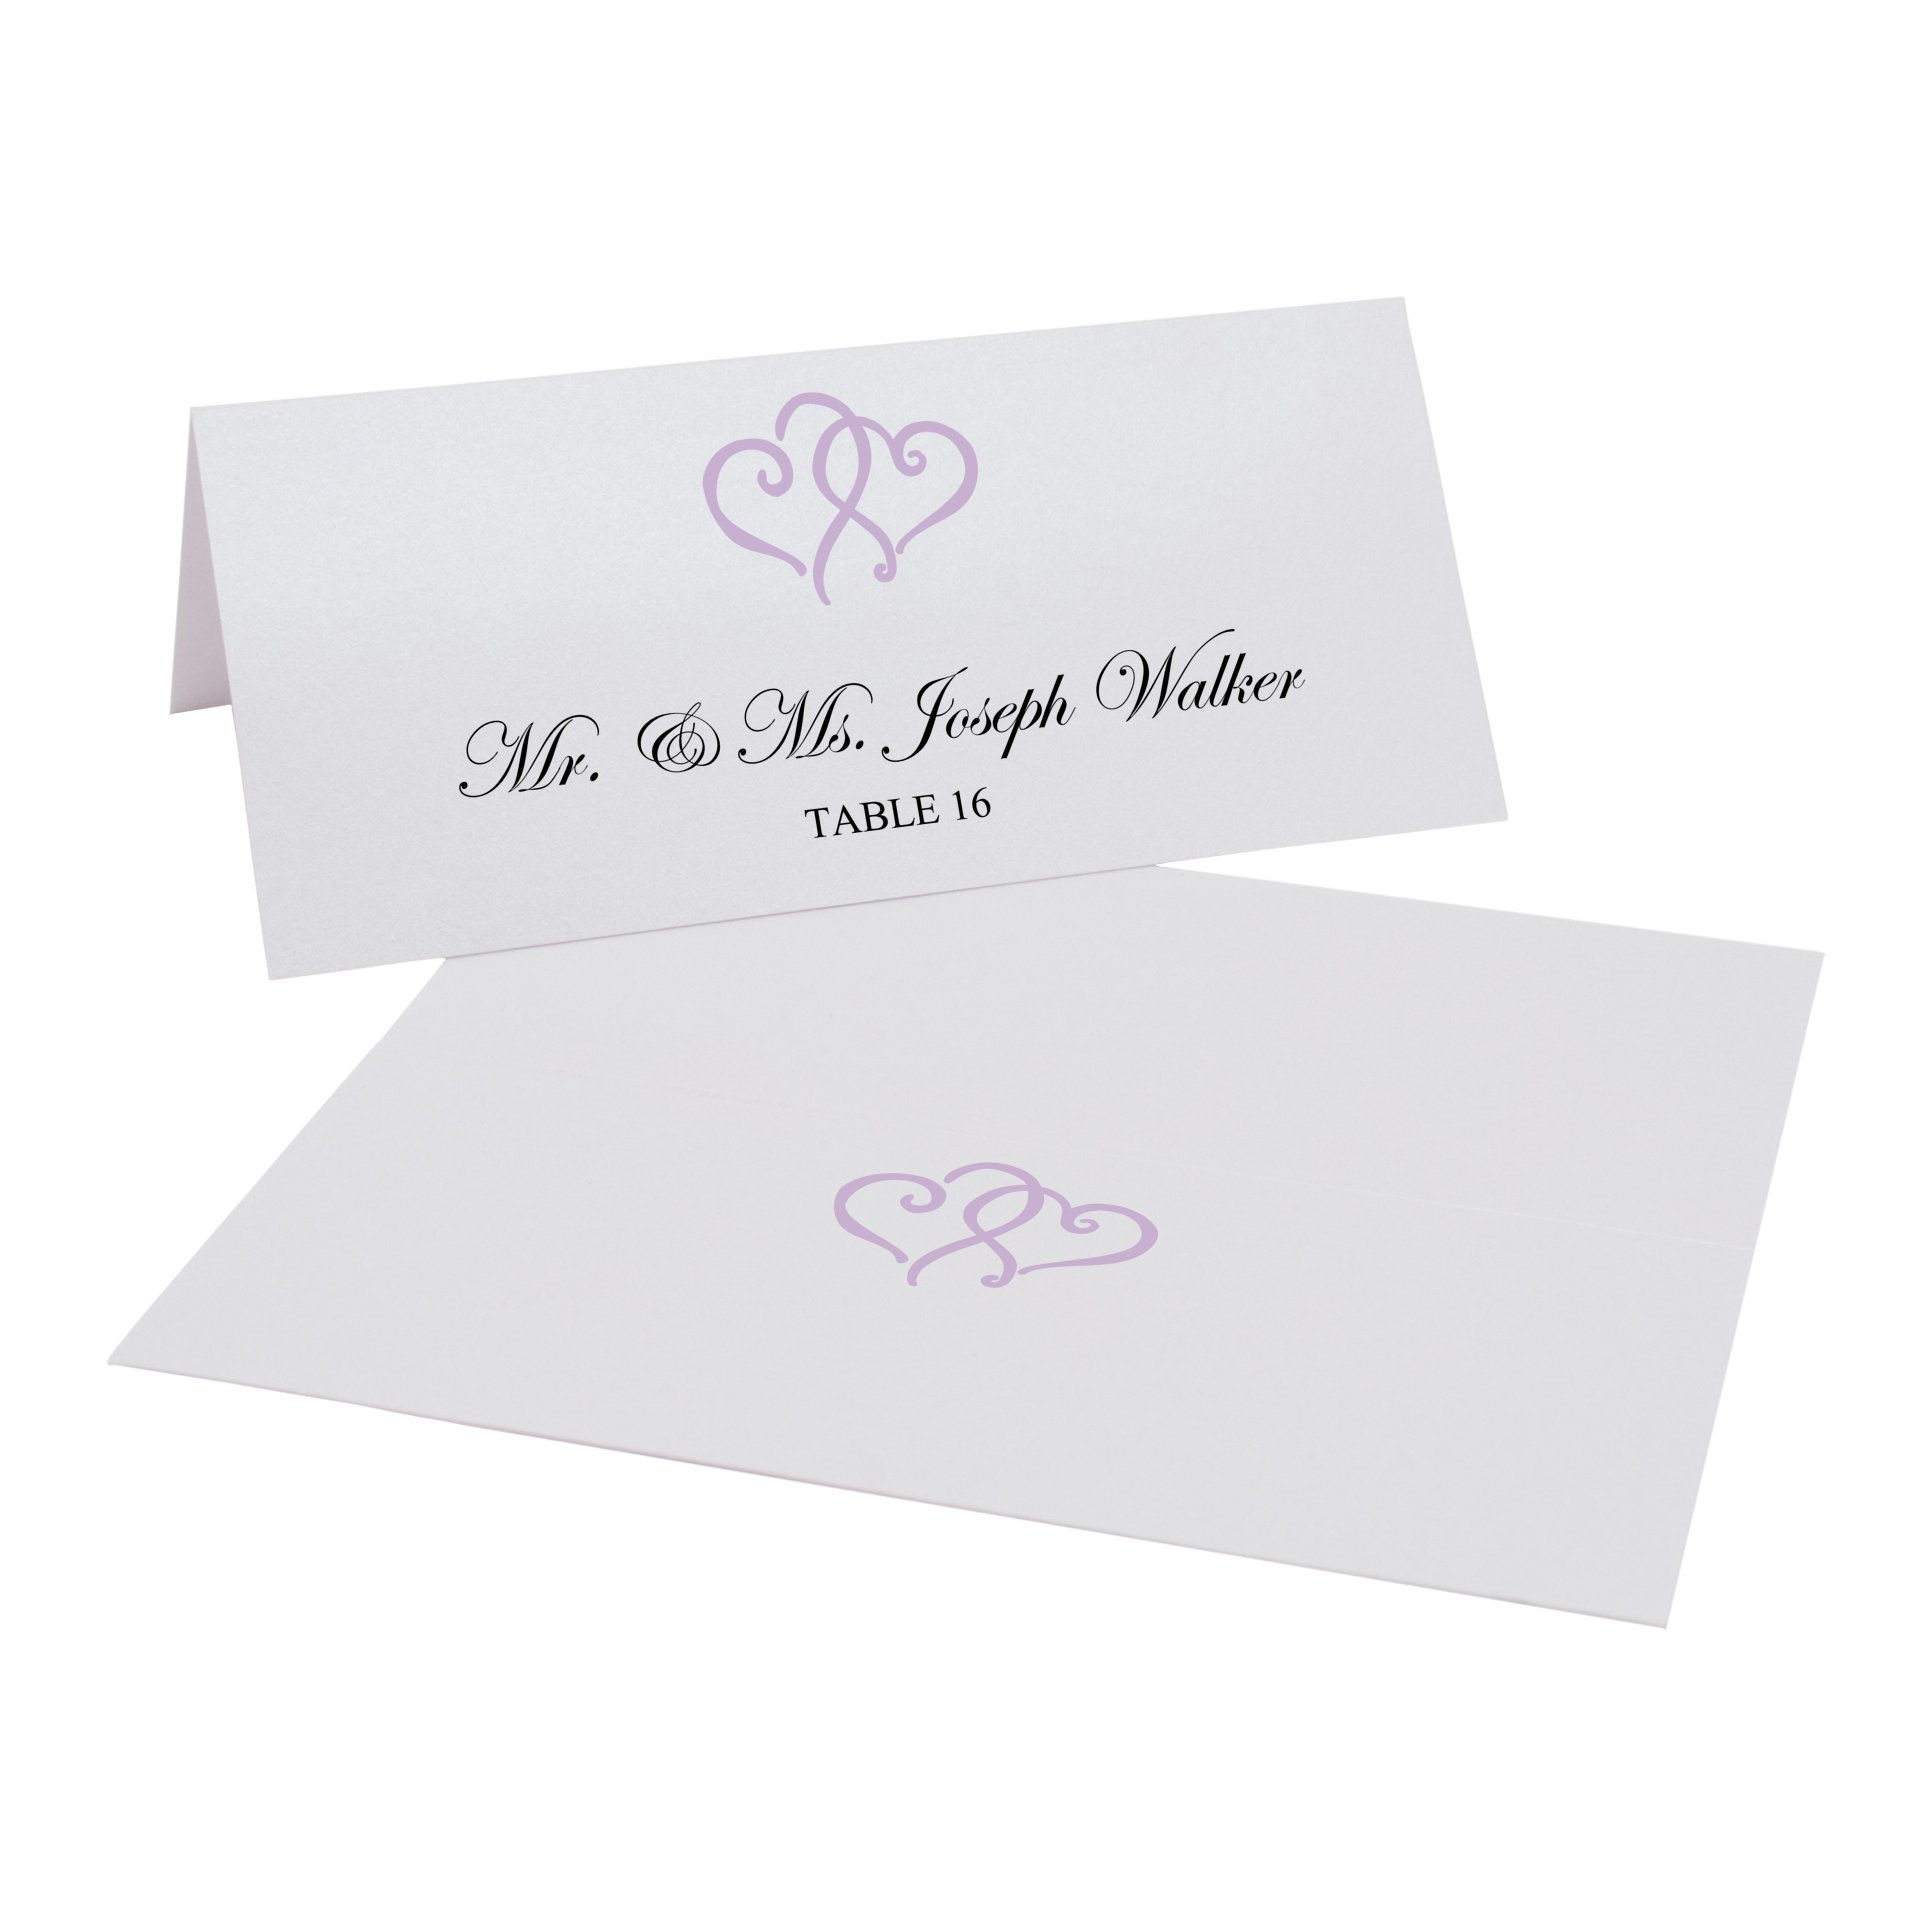 Linked Hearts Easy Print Place Cards, Pearl White, Lavender, Set of 350 (88 Sheets)